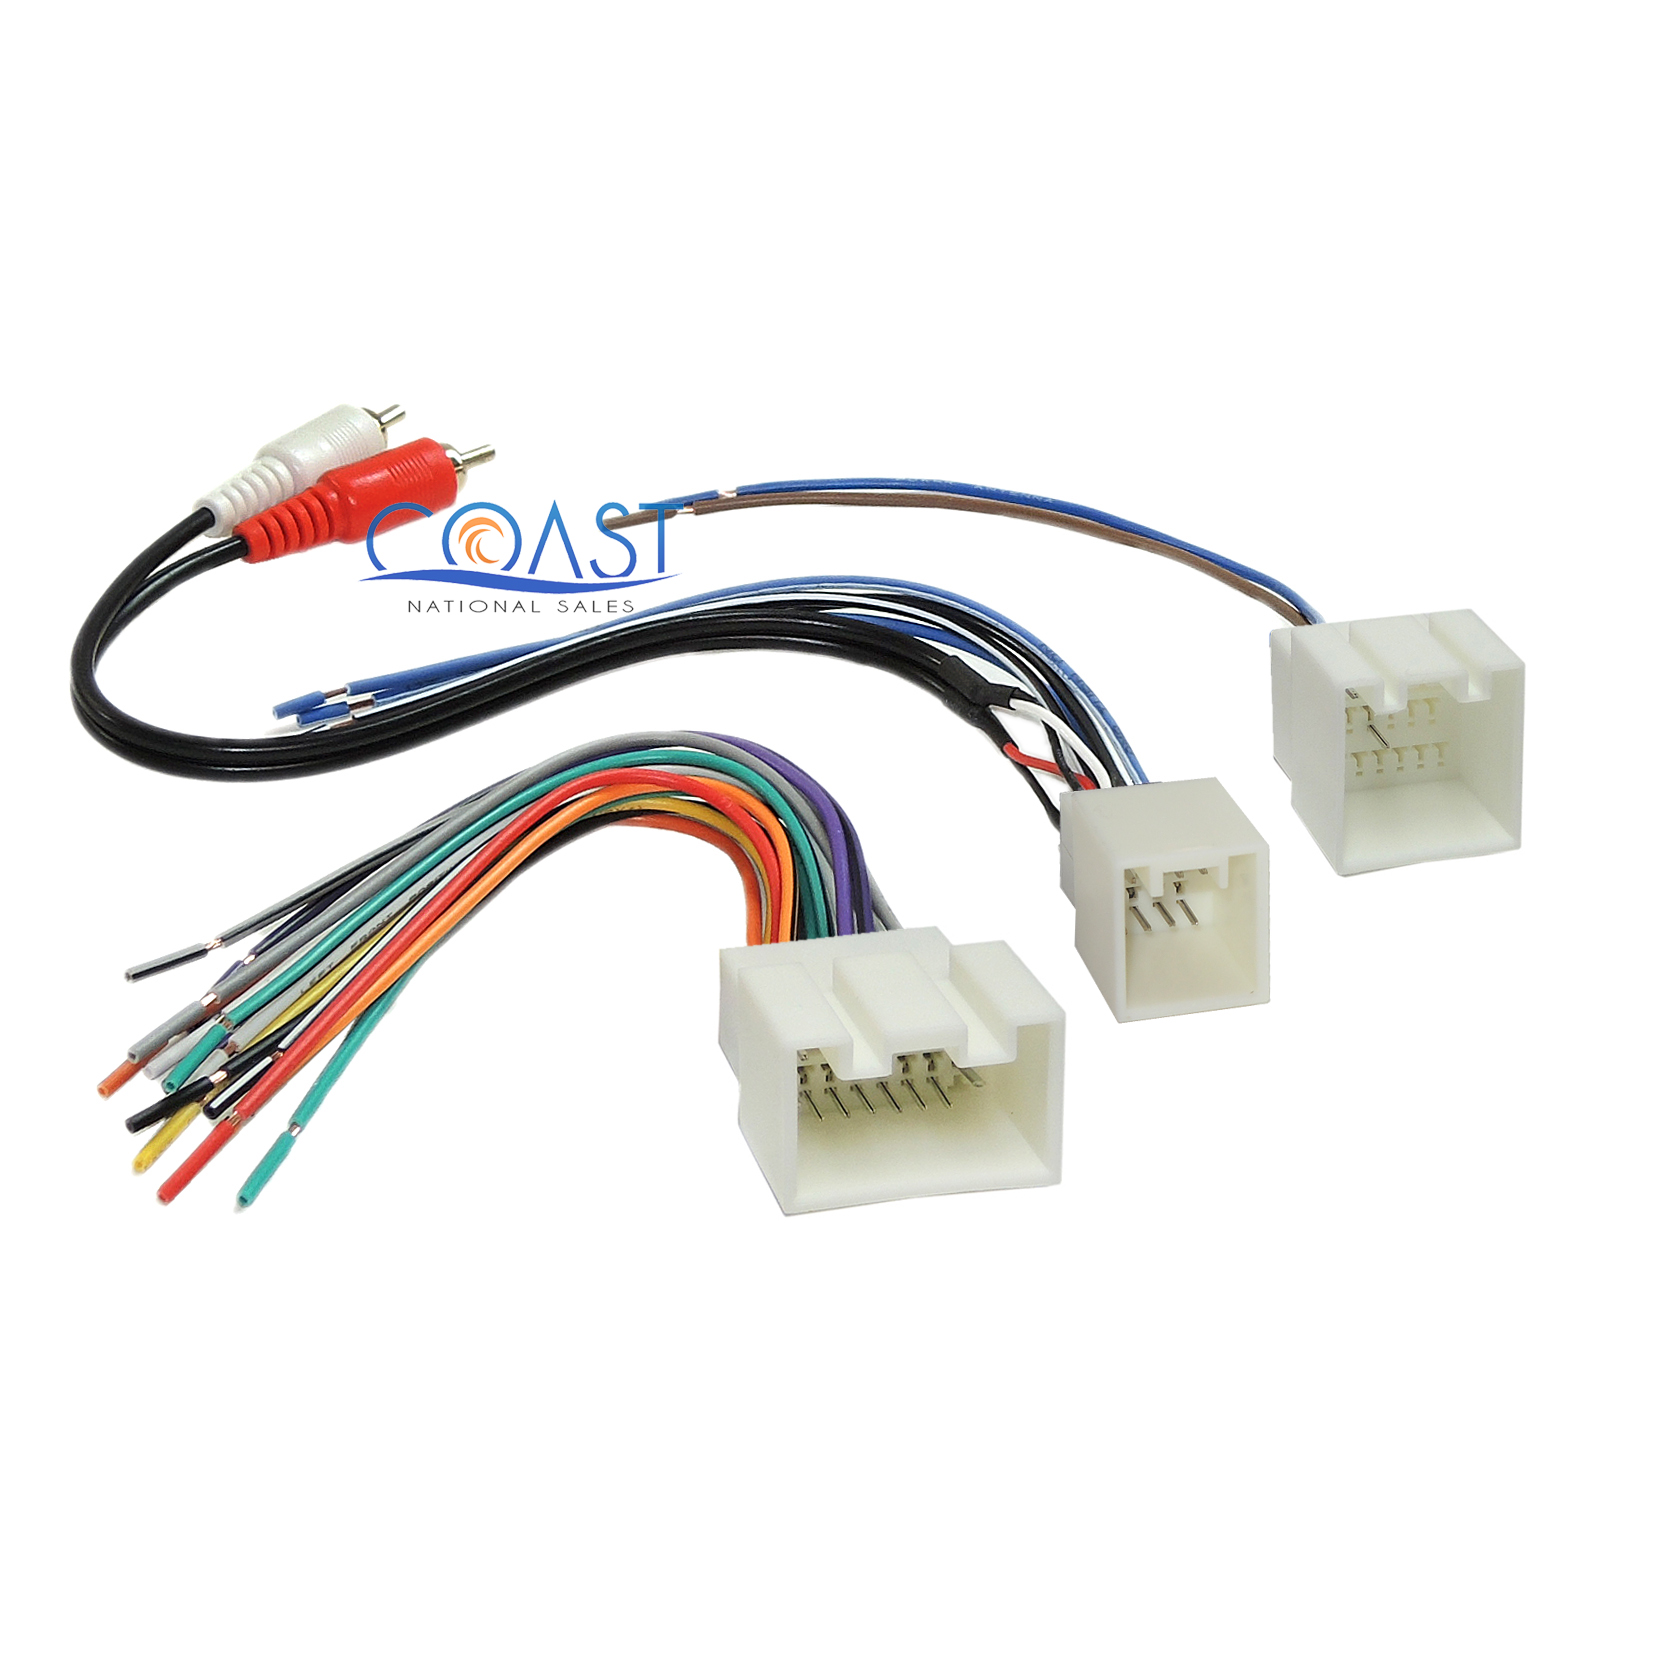 ford car stereo wiring diagrams kawasaki mule 3010 ignition diagram radio amp harness with rca for 1998 2005